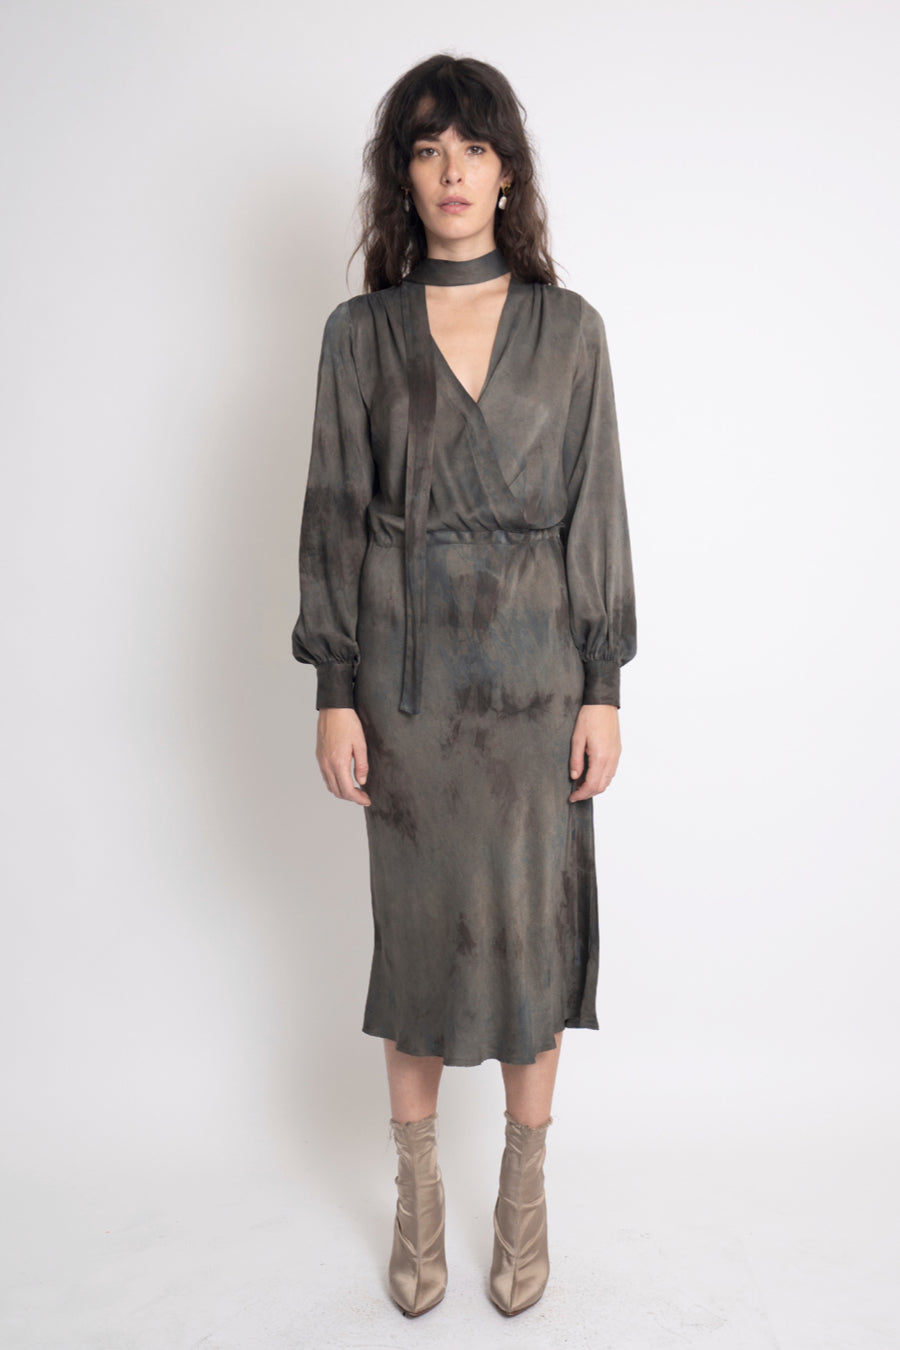 KES Levy Tunneled Dress